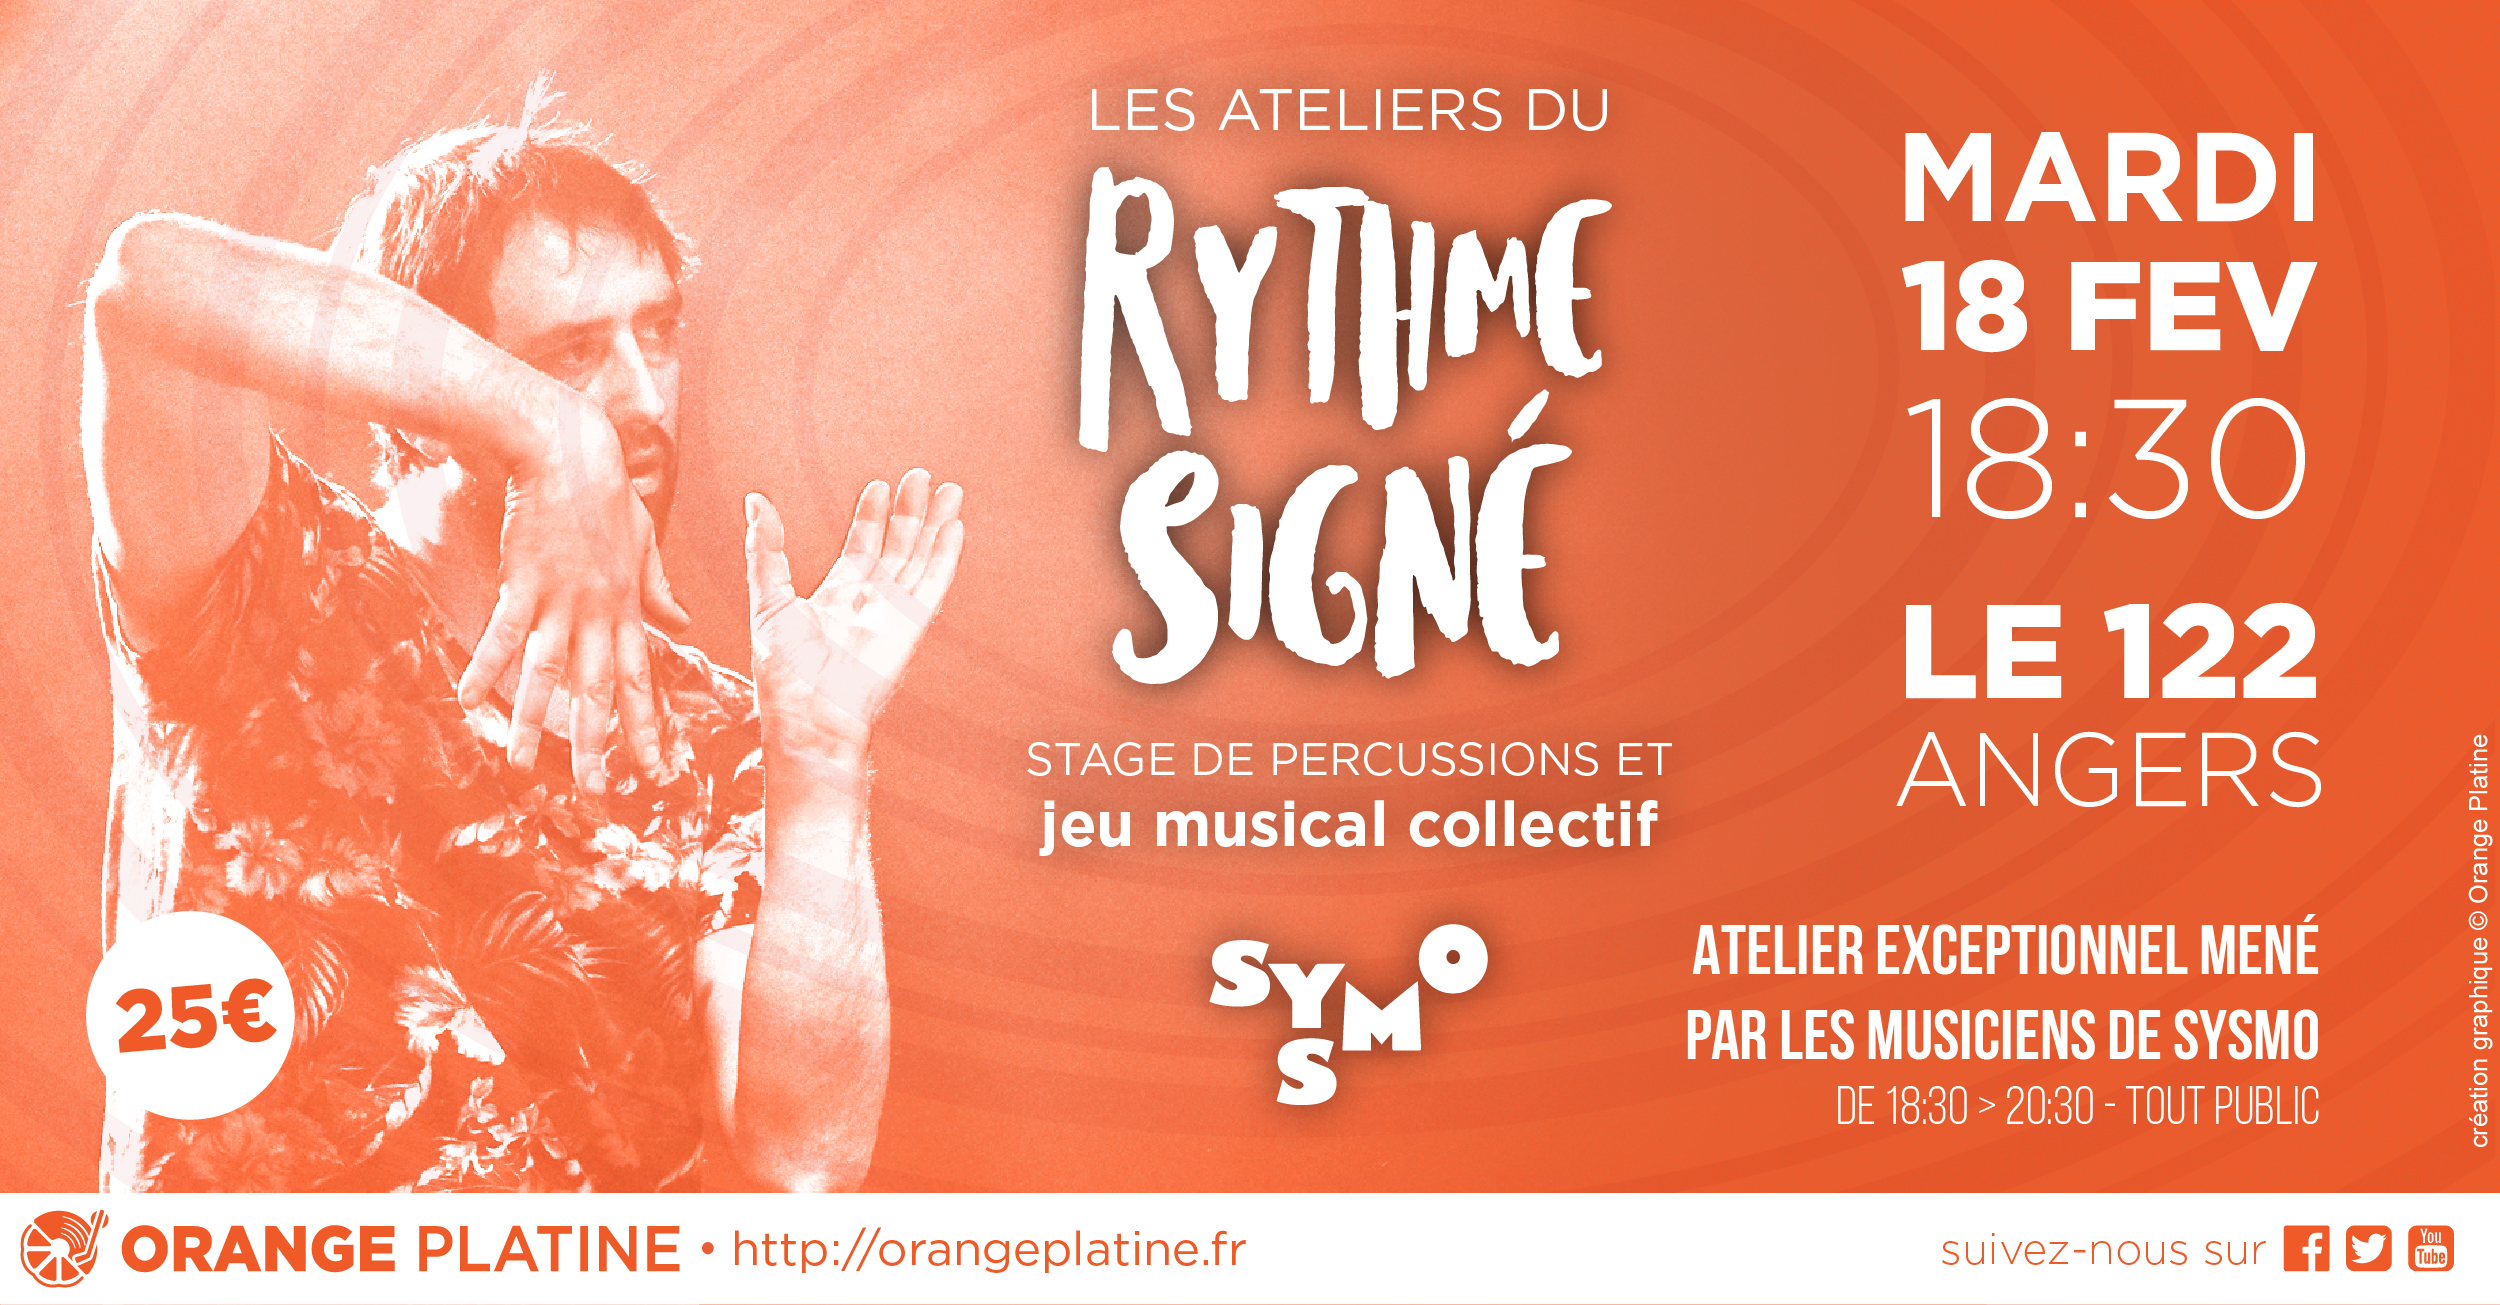 Atelier Percussions Rythem Signé Sysmo - 18022020